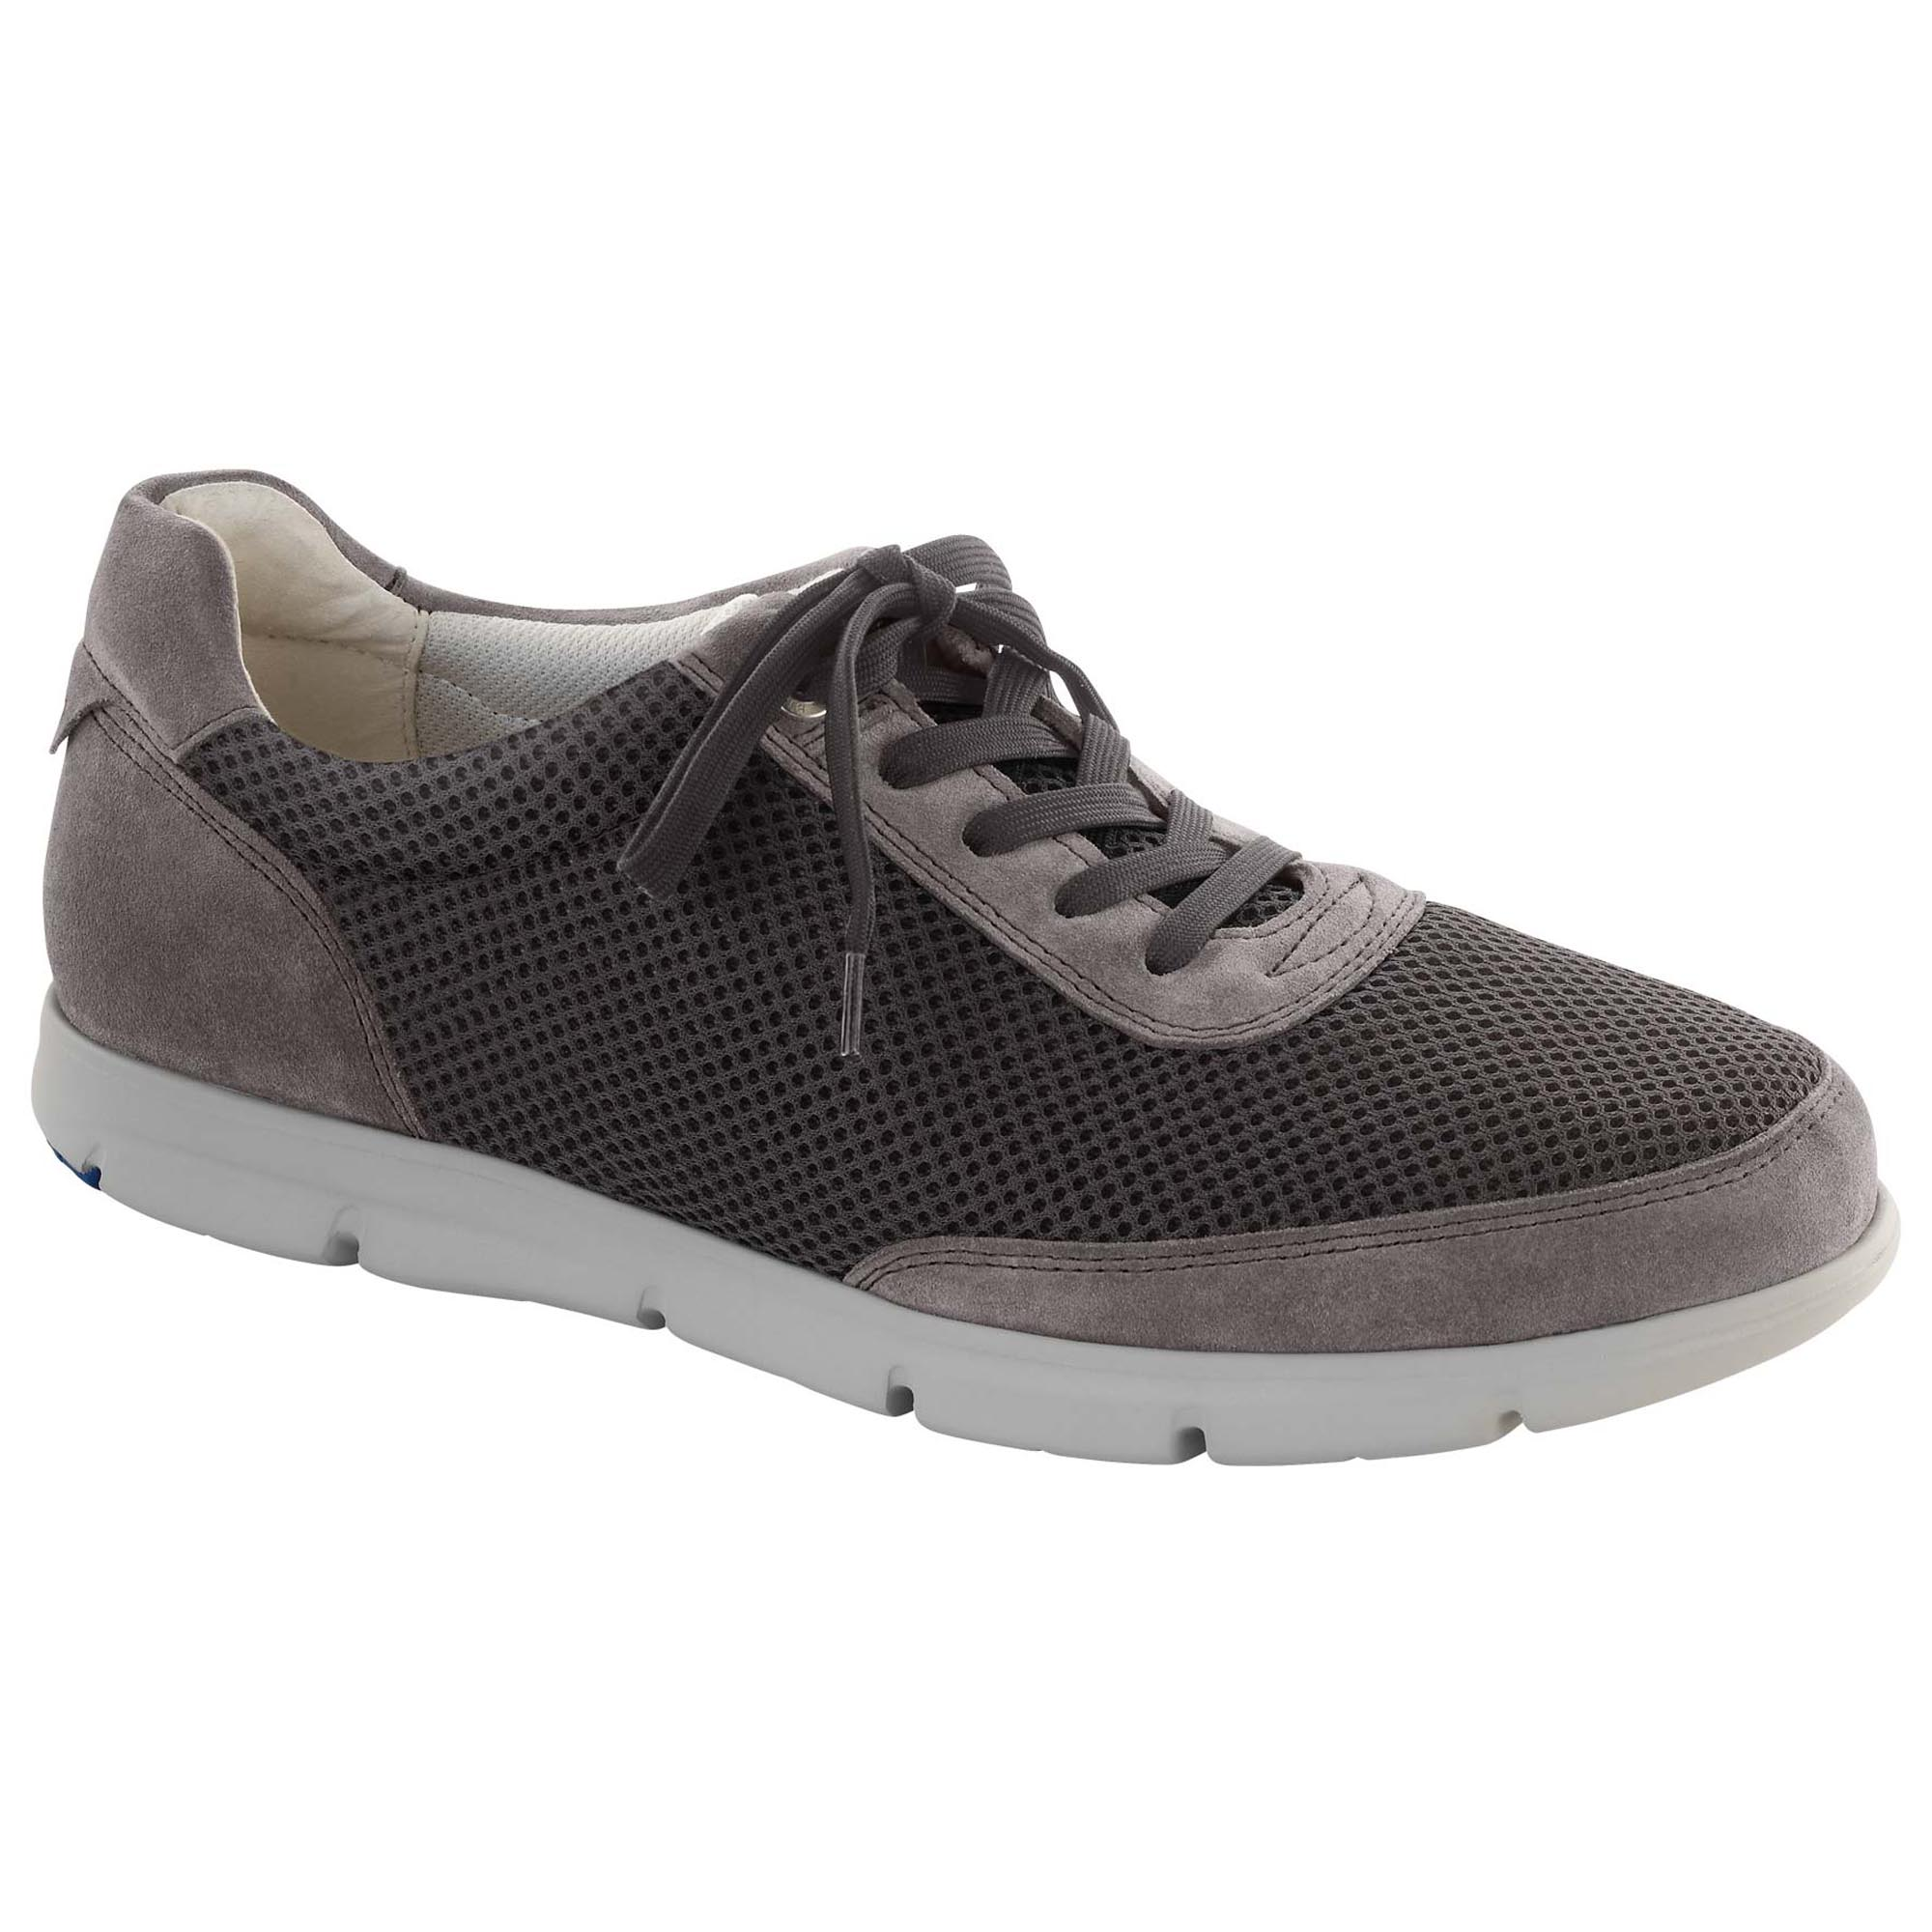 b5531bf936fd71 Illinois Suede Leather Textile Grey ...